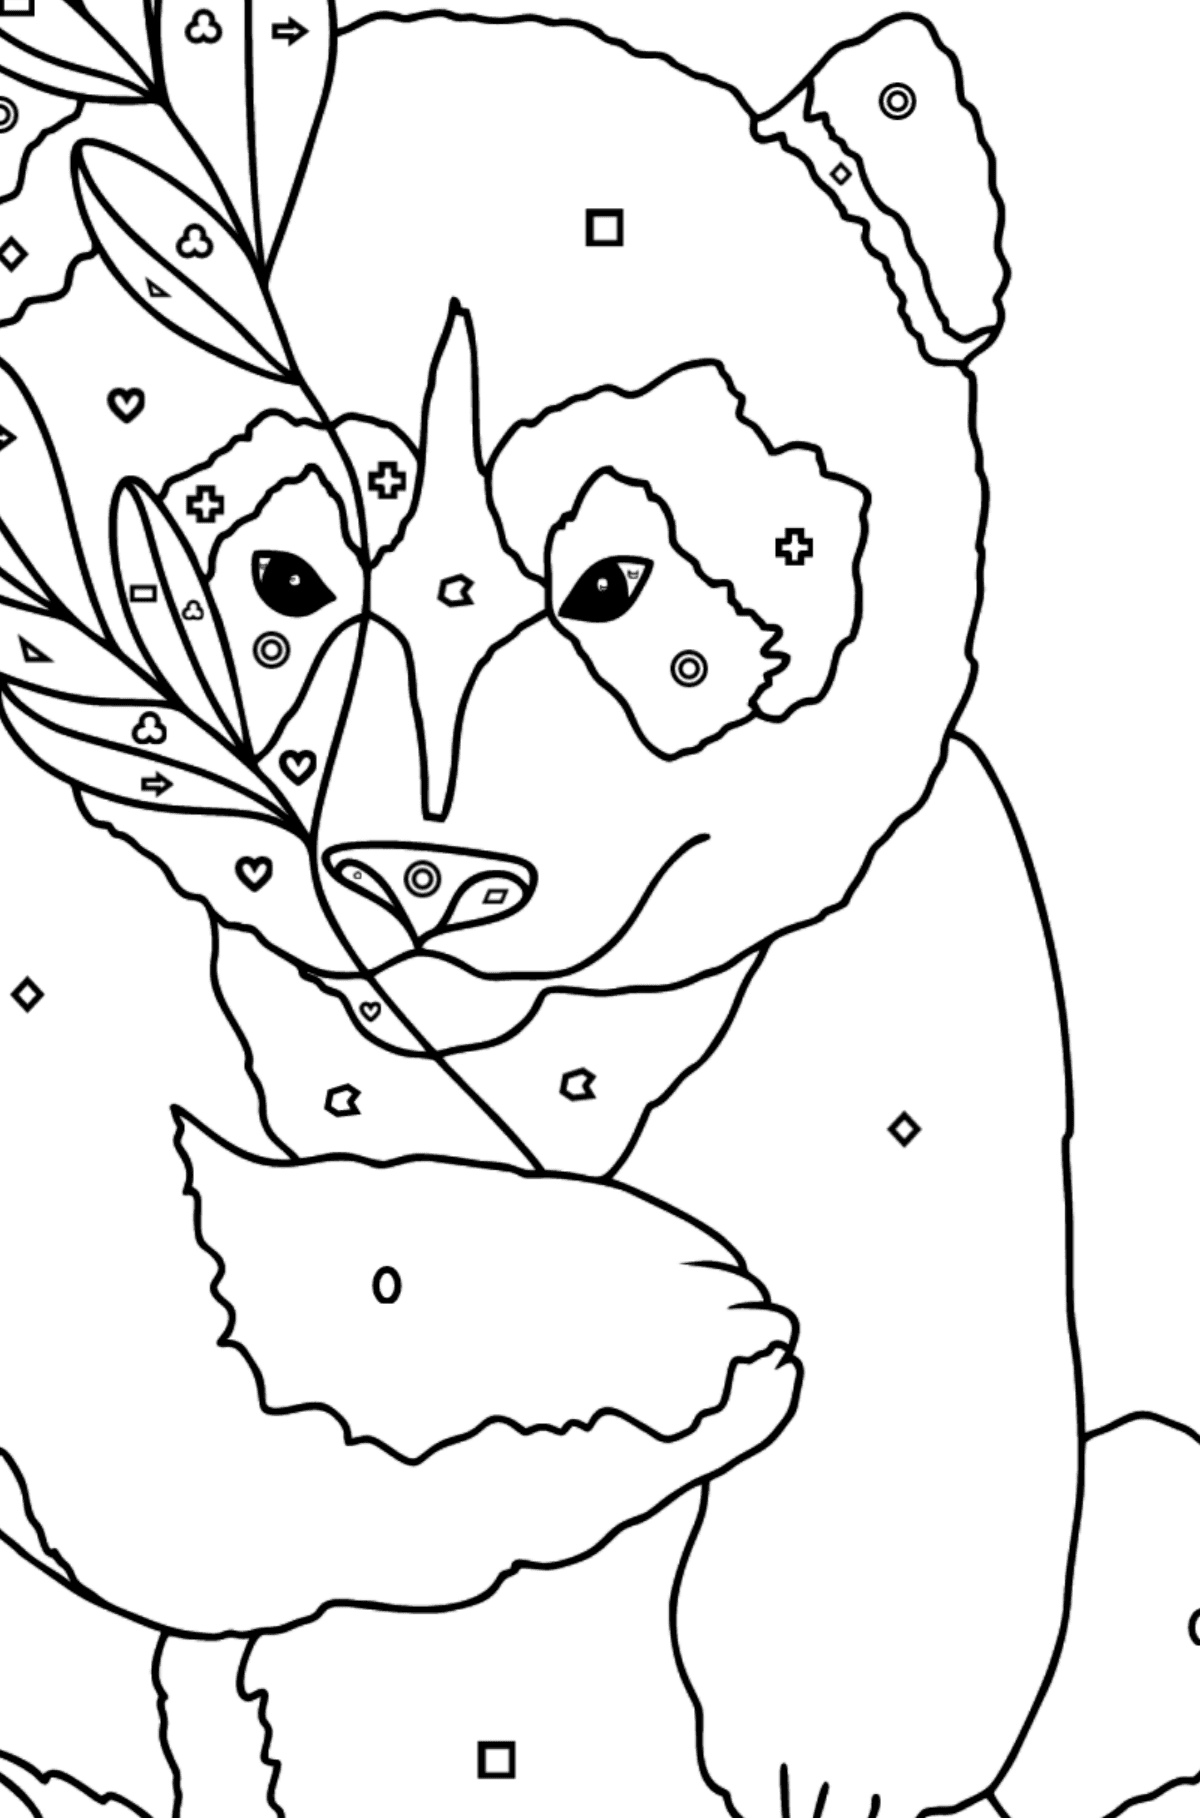 Coloring Page - A Panda Loves Bamboo Leaves - Coloring by Geometric Shapes for Kids